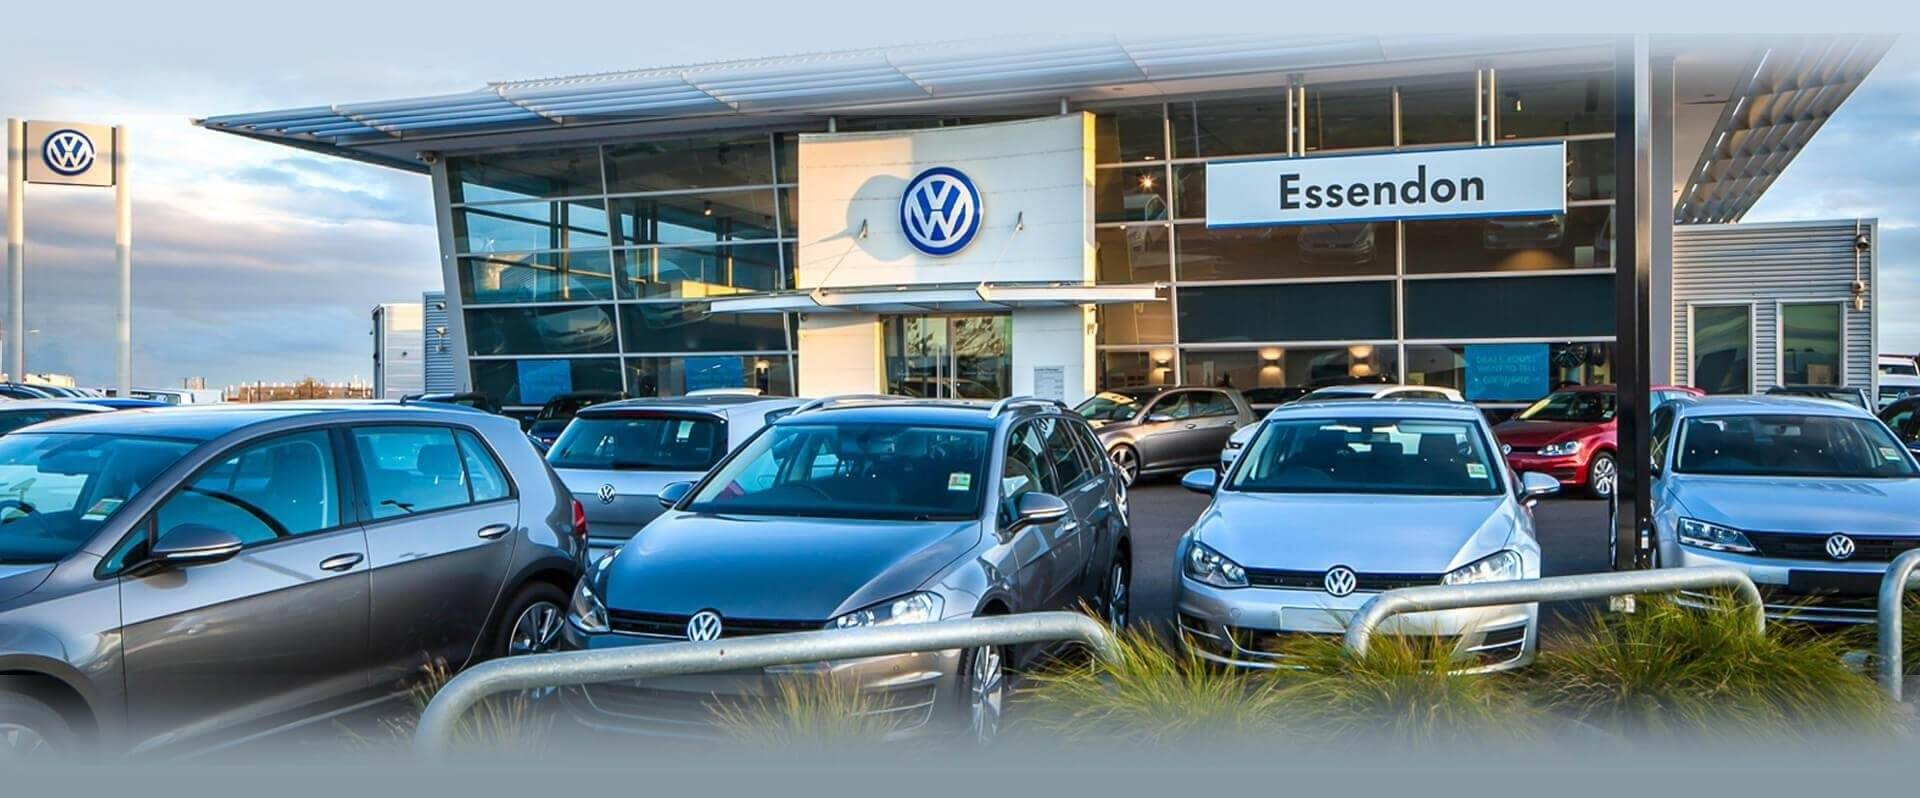 Essendon Volkswagen